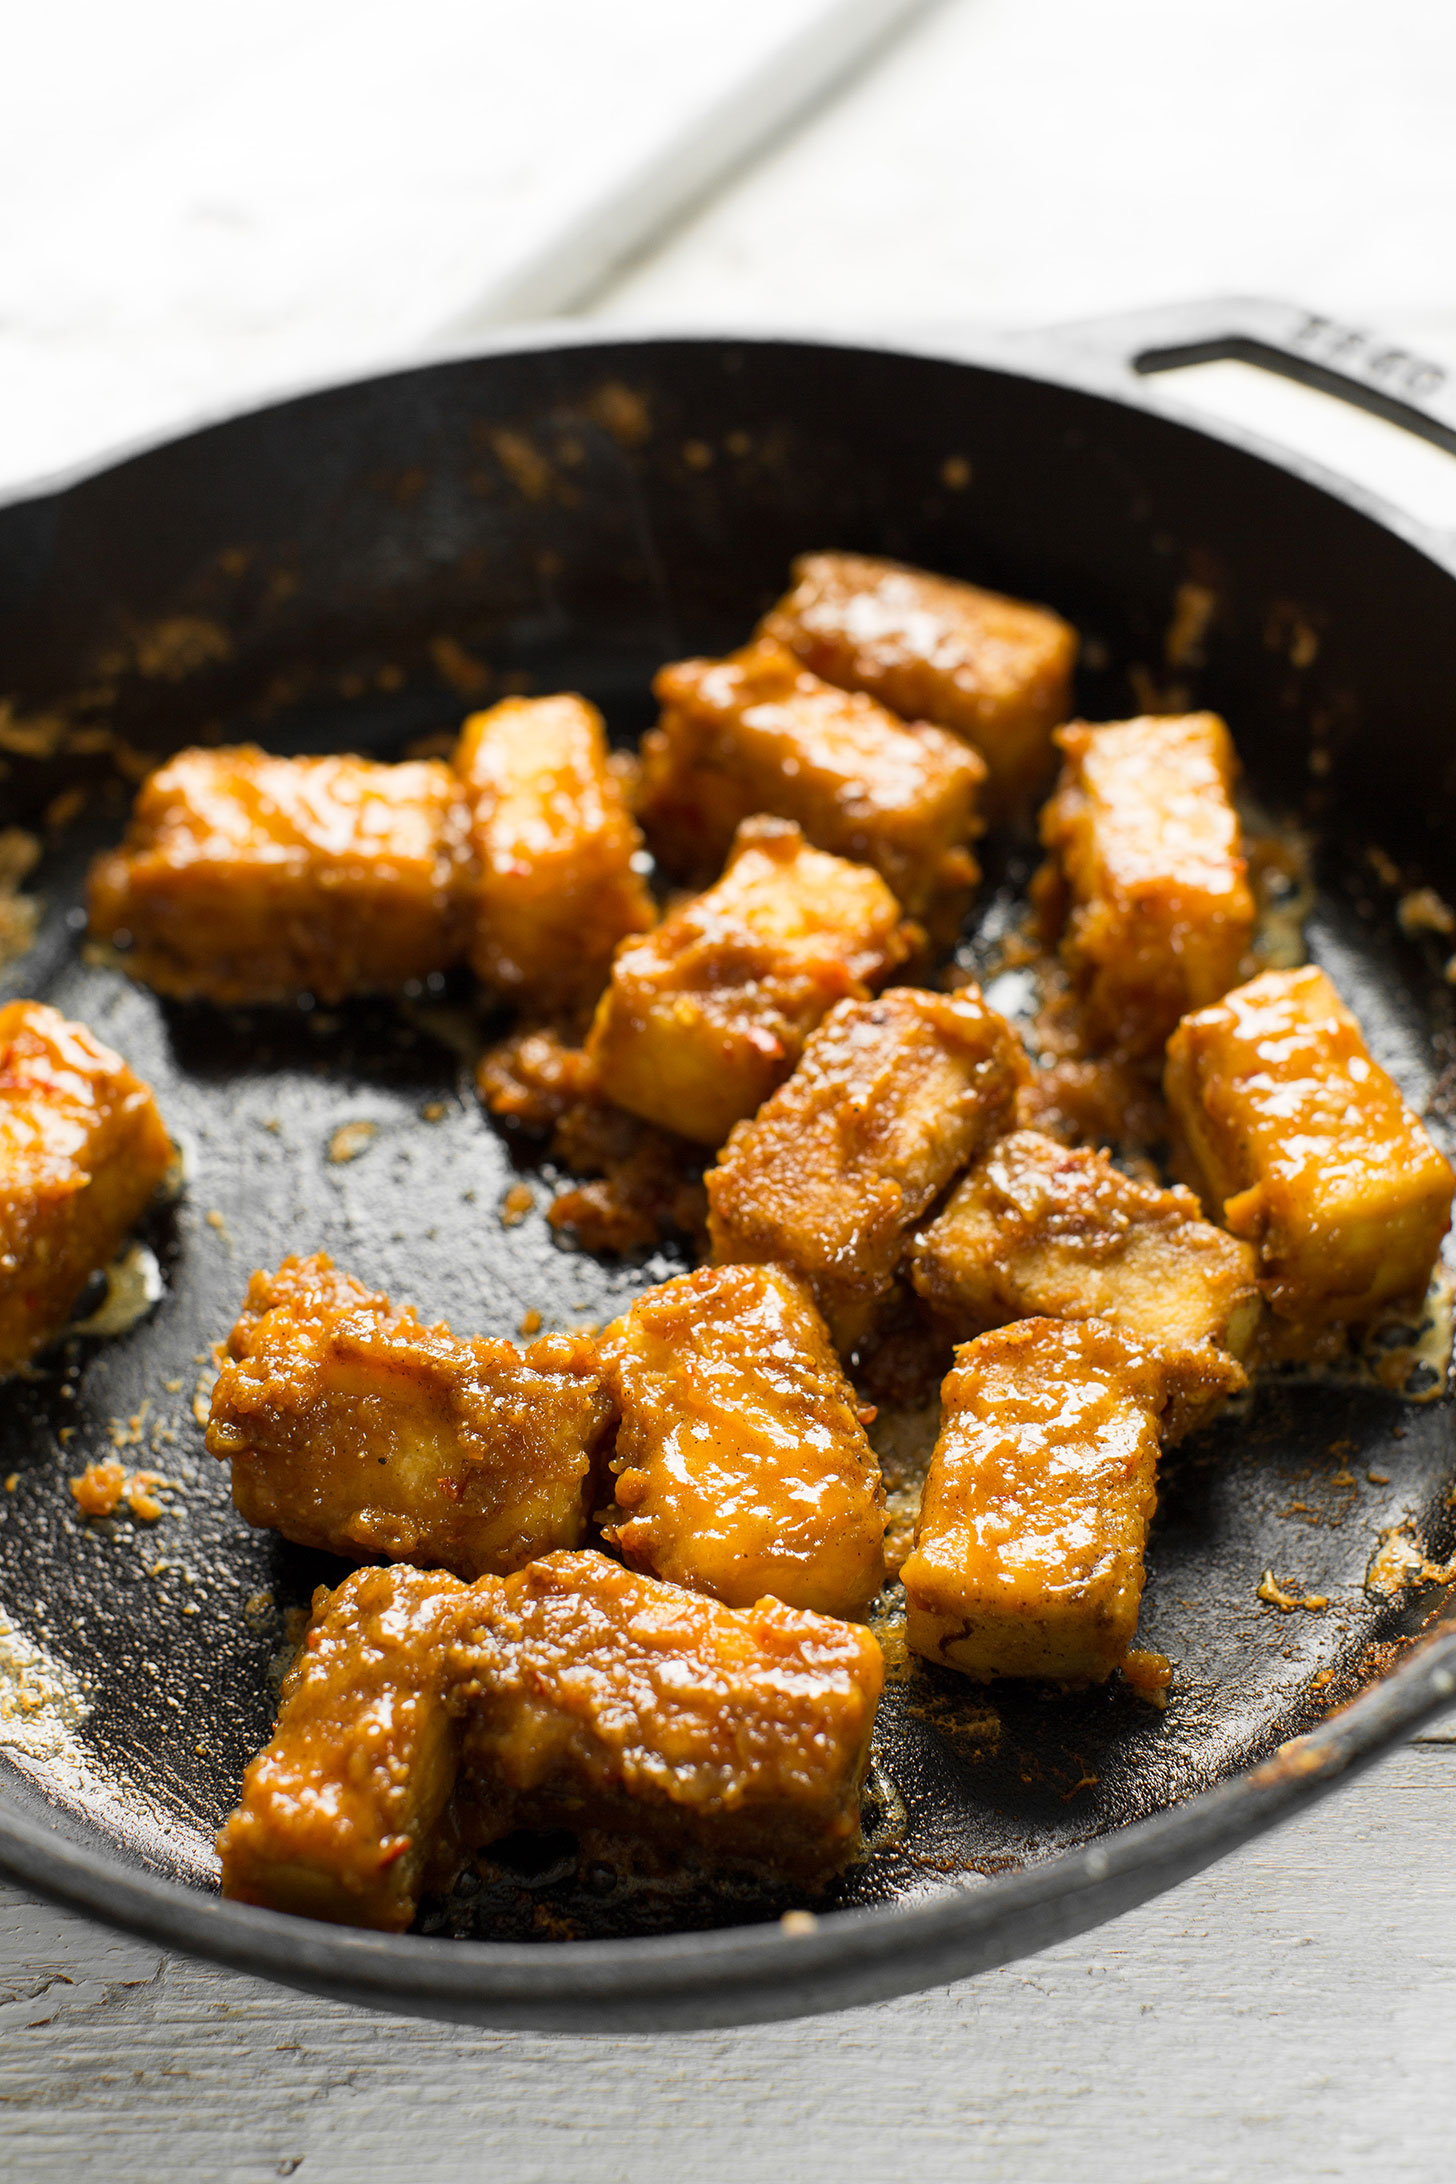 Cooking Almond Butter Tofu in a cast-iron skillet for a protein-packed plant-based meal